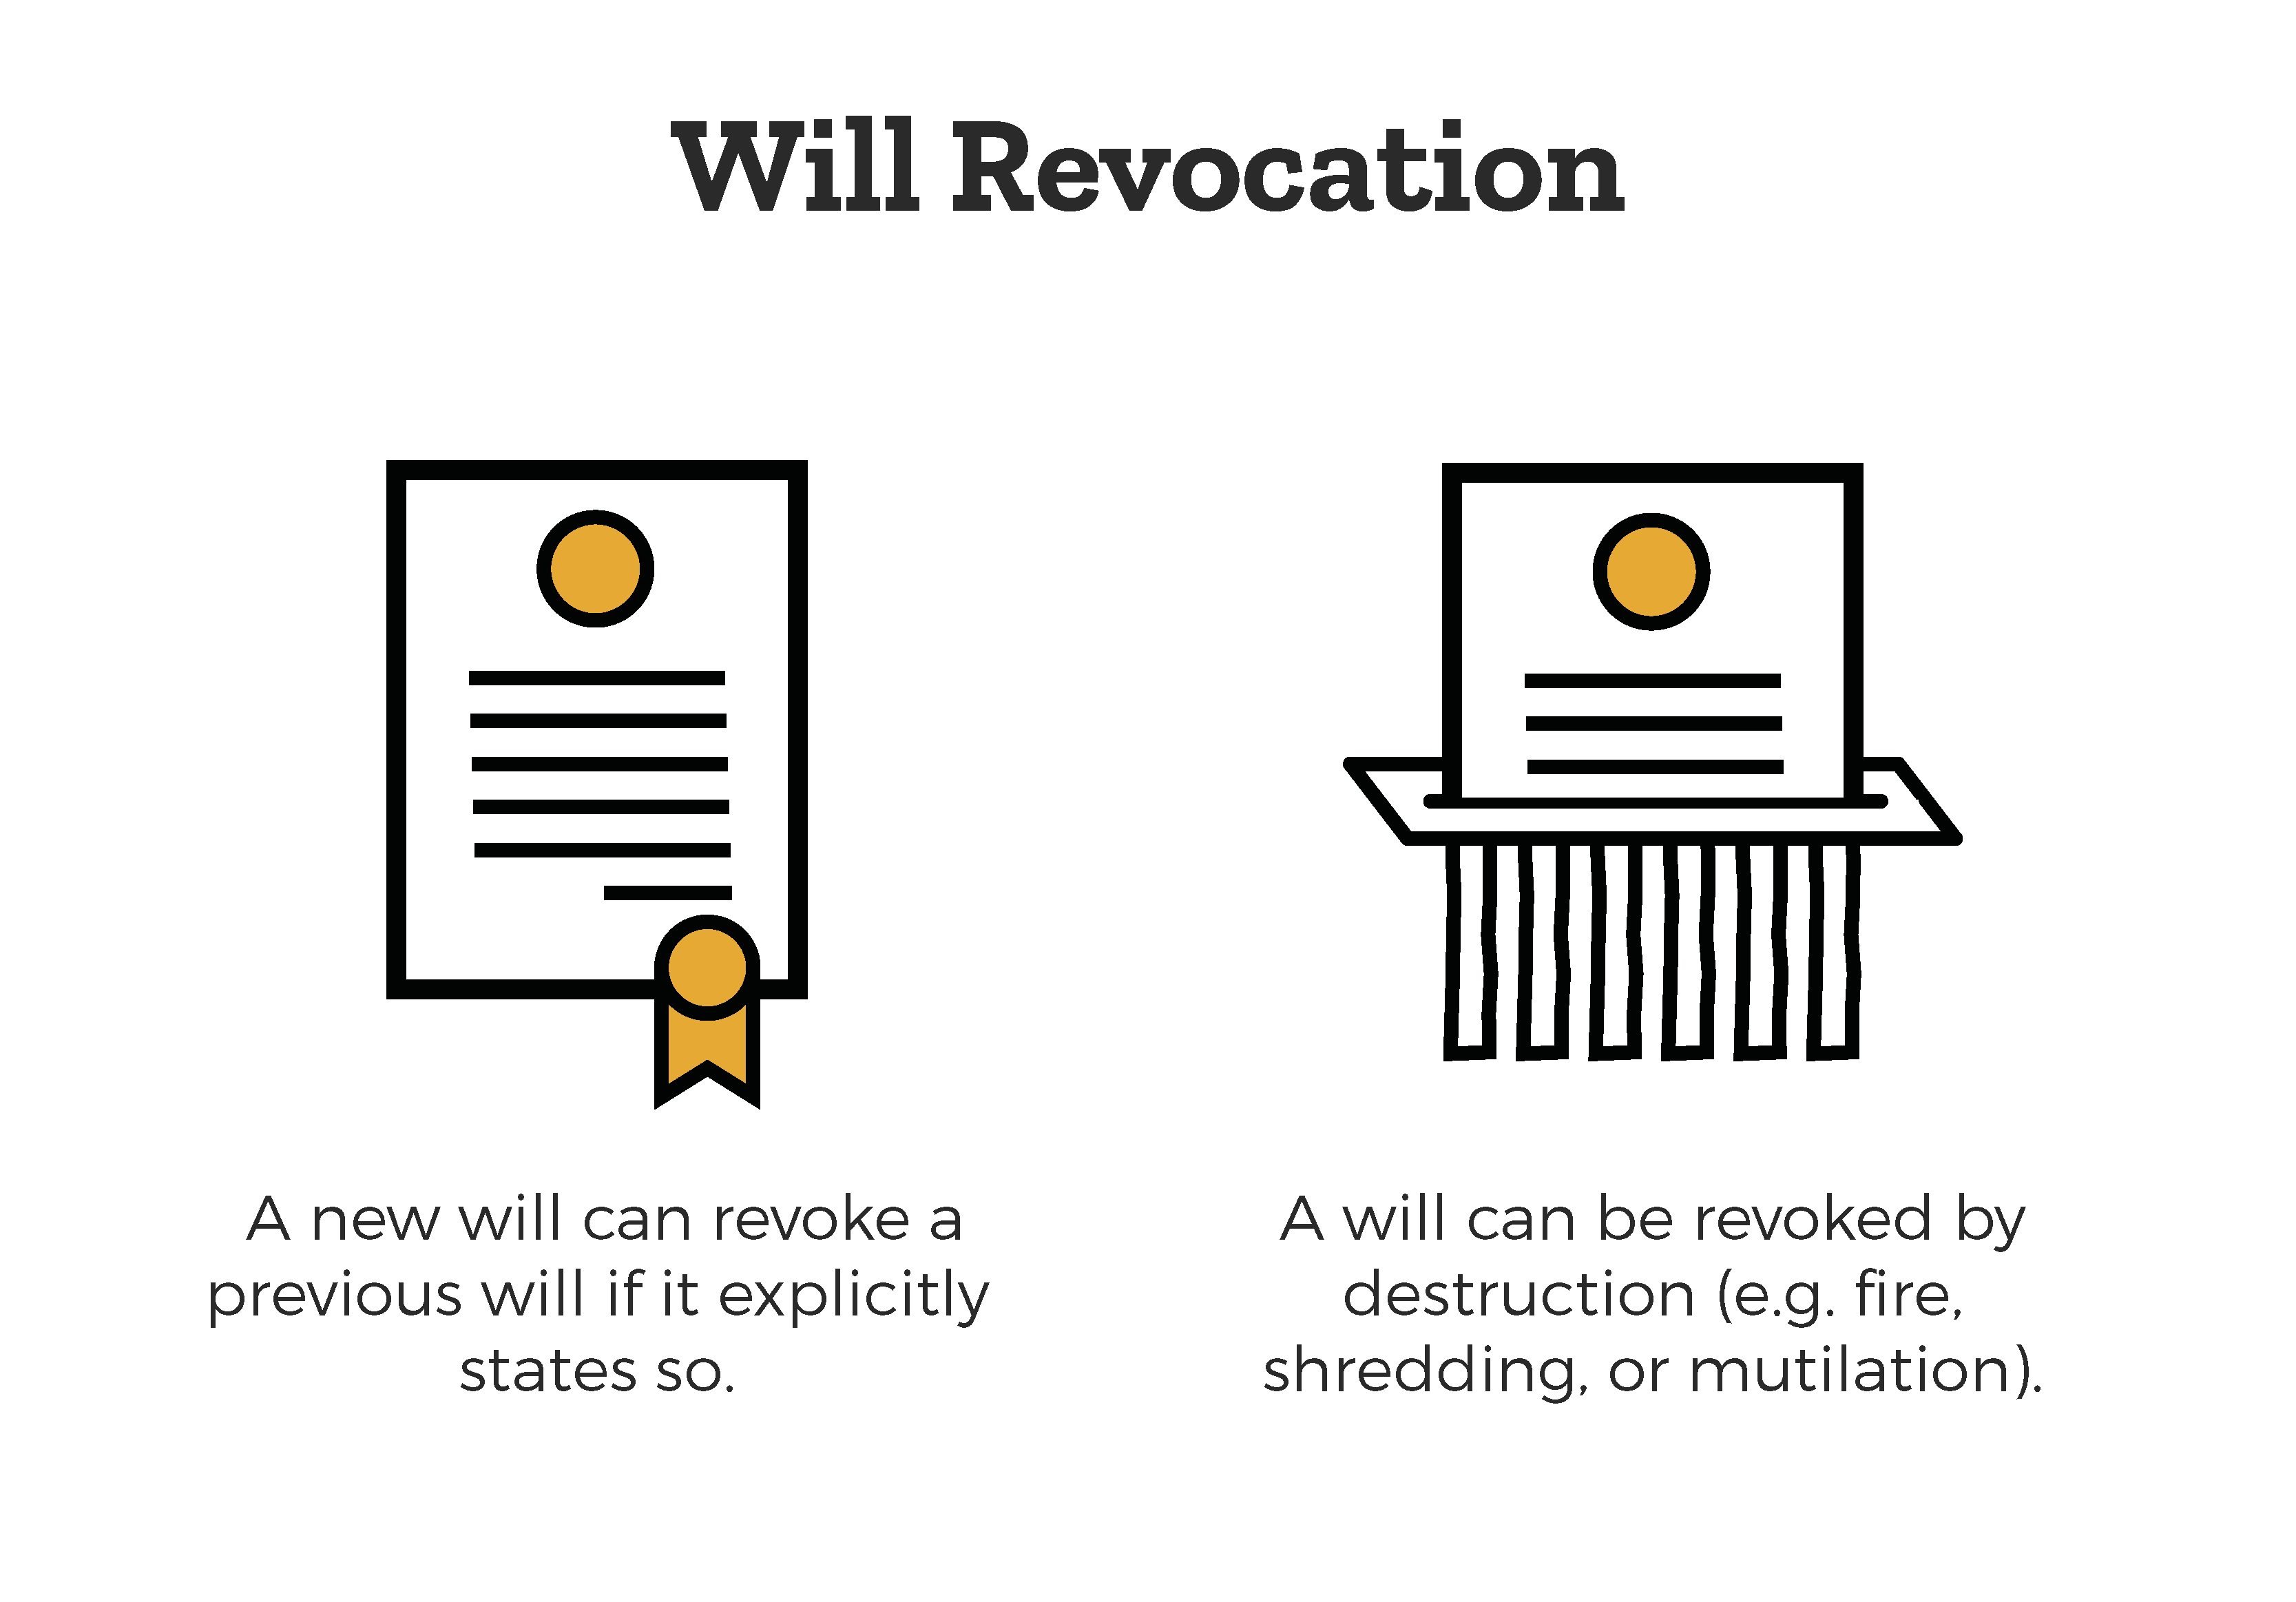 a-will-can-be-revoked-by-a-new-will-or-by-destruction